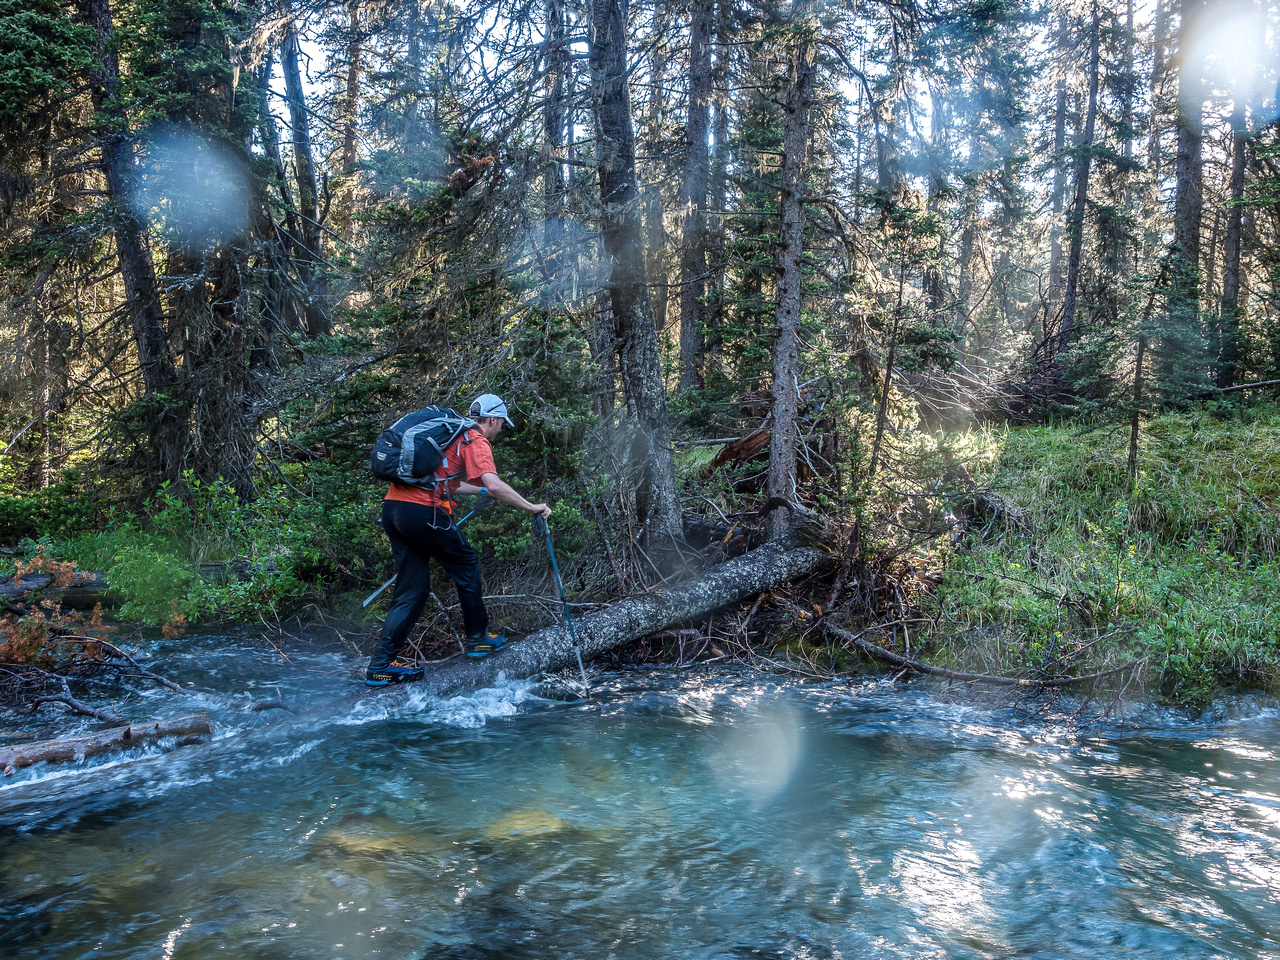 Our escape across Currie Creek. Right where Phil is the water was deeper than my 120cm poles could reach. And that log is slick too.